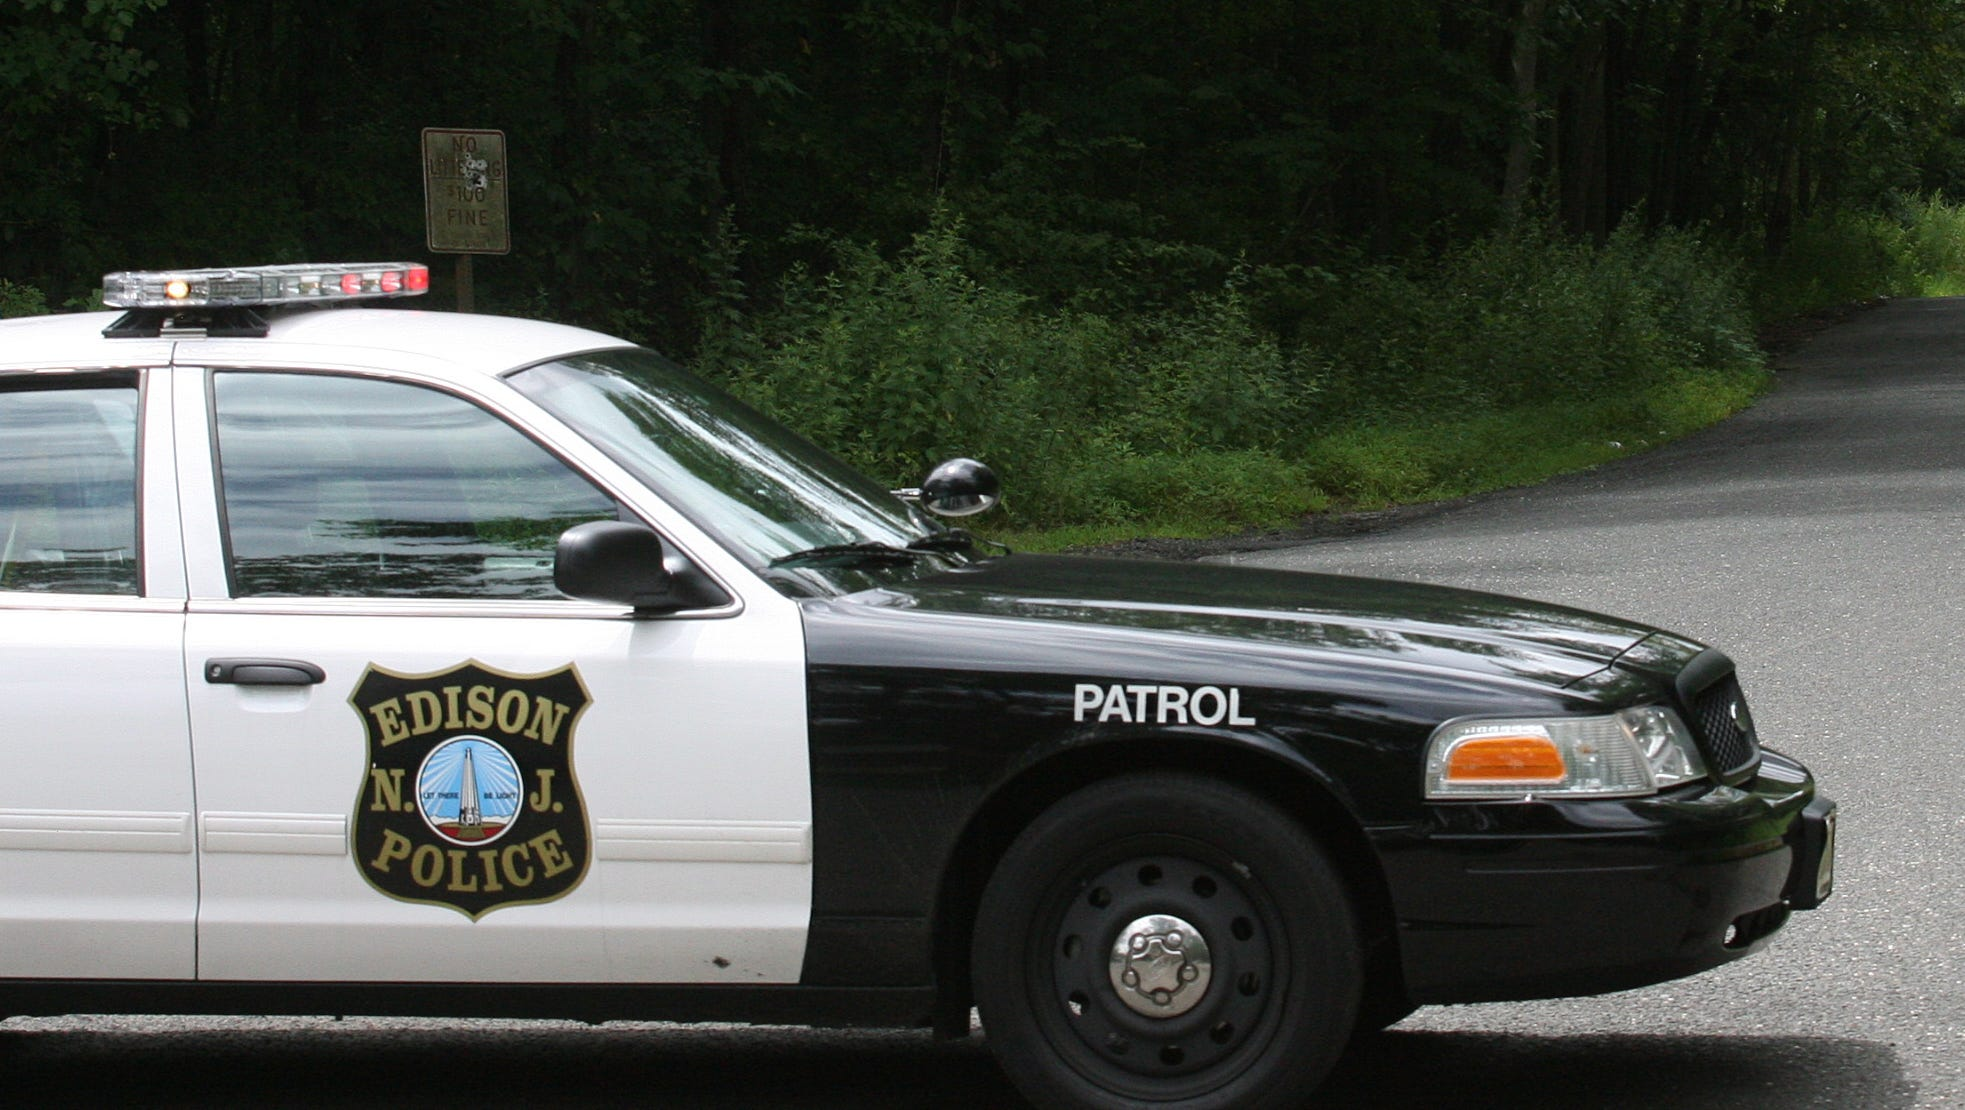 Part 16: Police opposed law aimed to fix Edison department